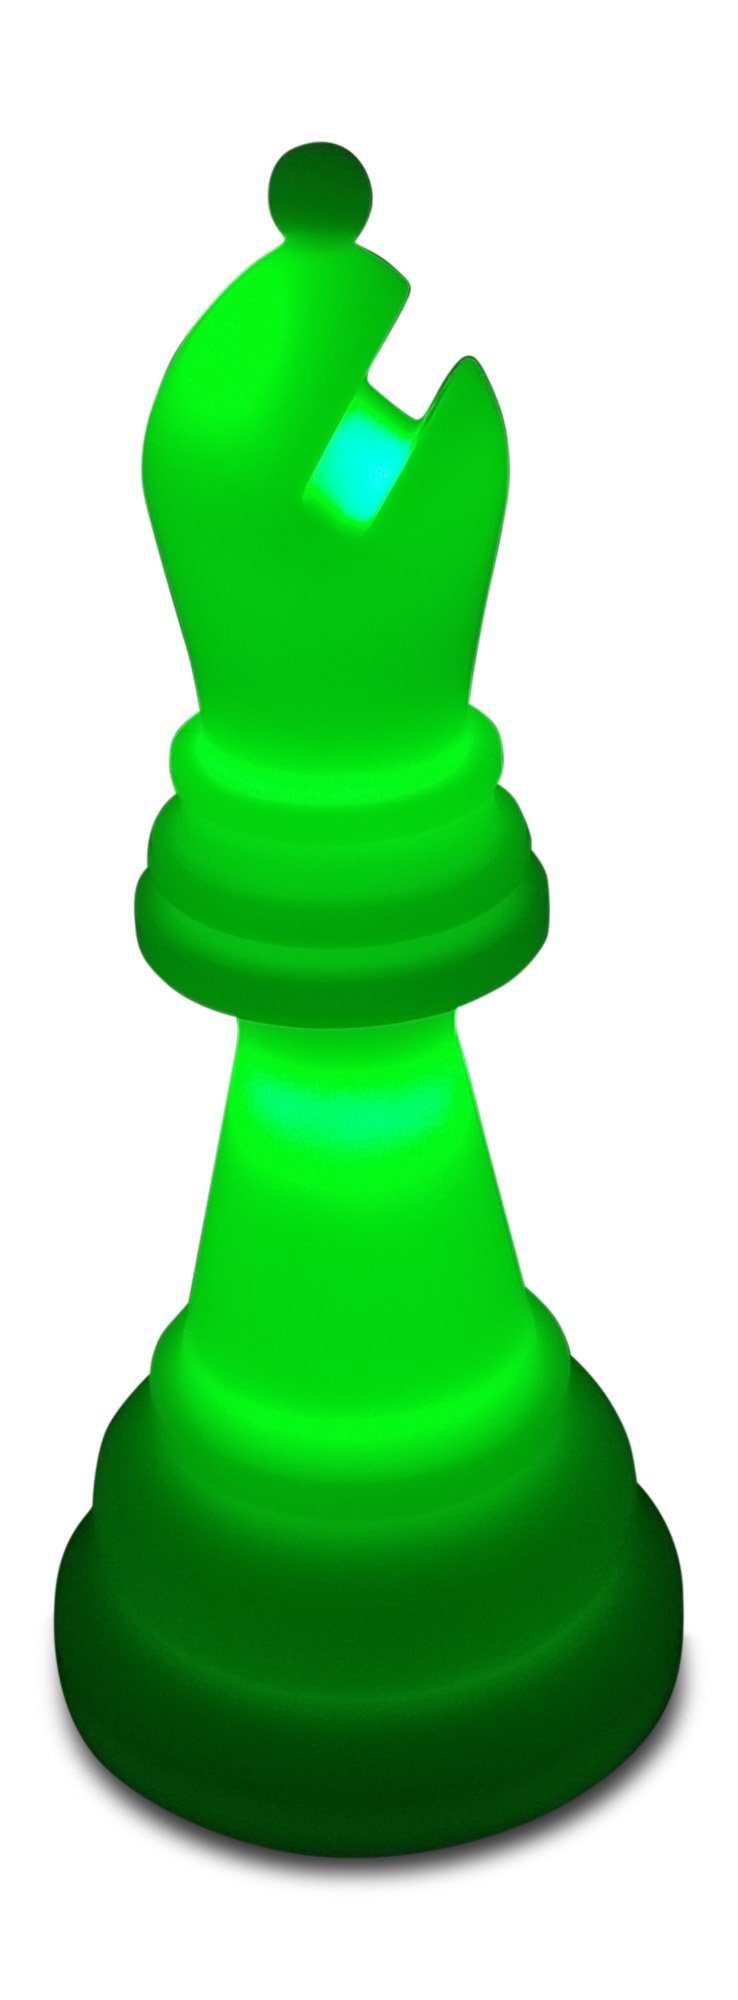 MegaChess 28 Inch Premium Plastic Bishop Light-Up Giant Chess Piece - Green | Default Title | MegaChess.com